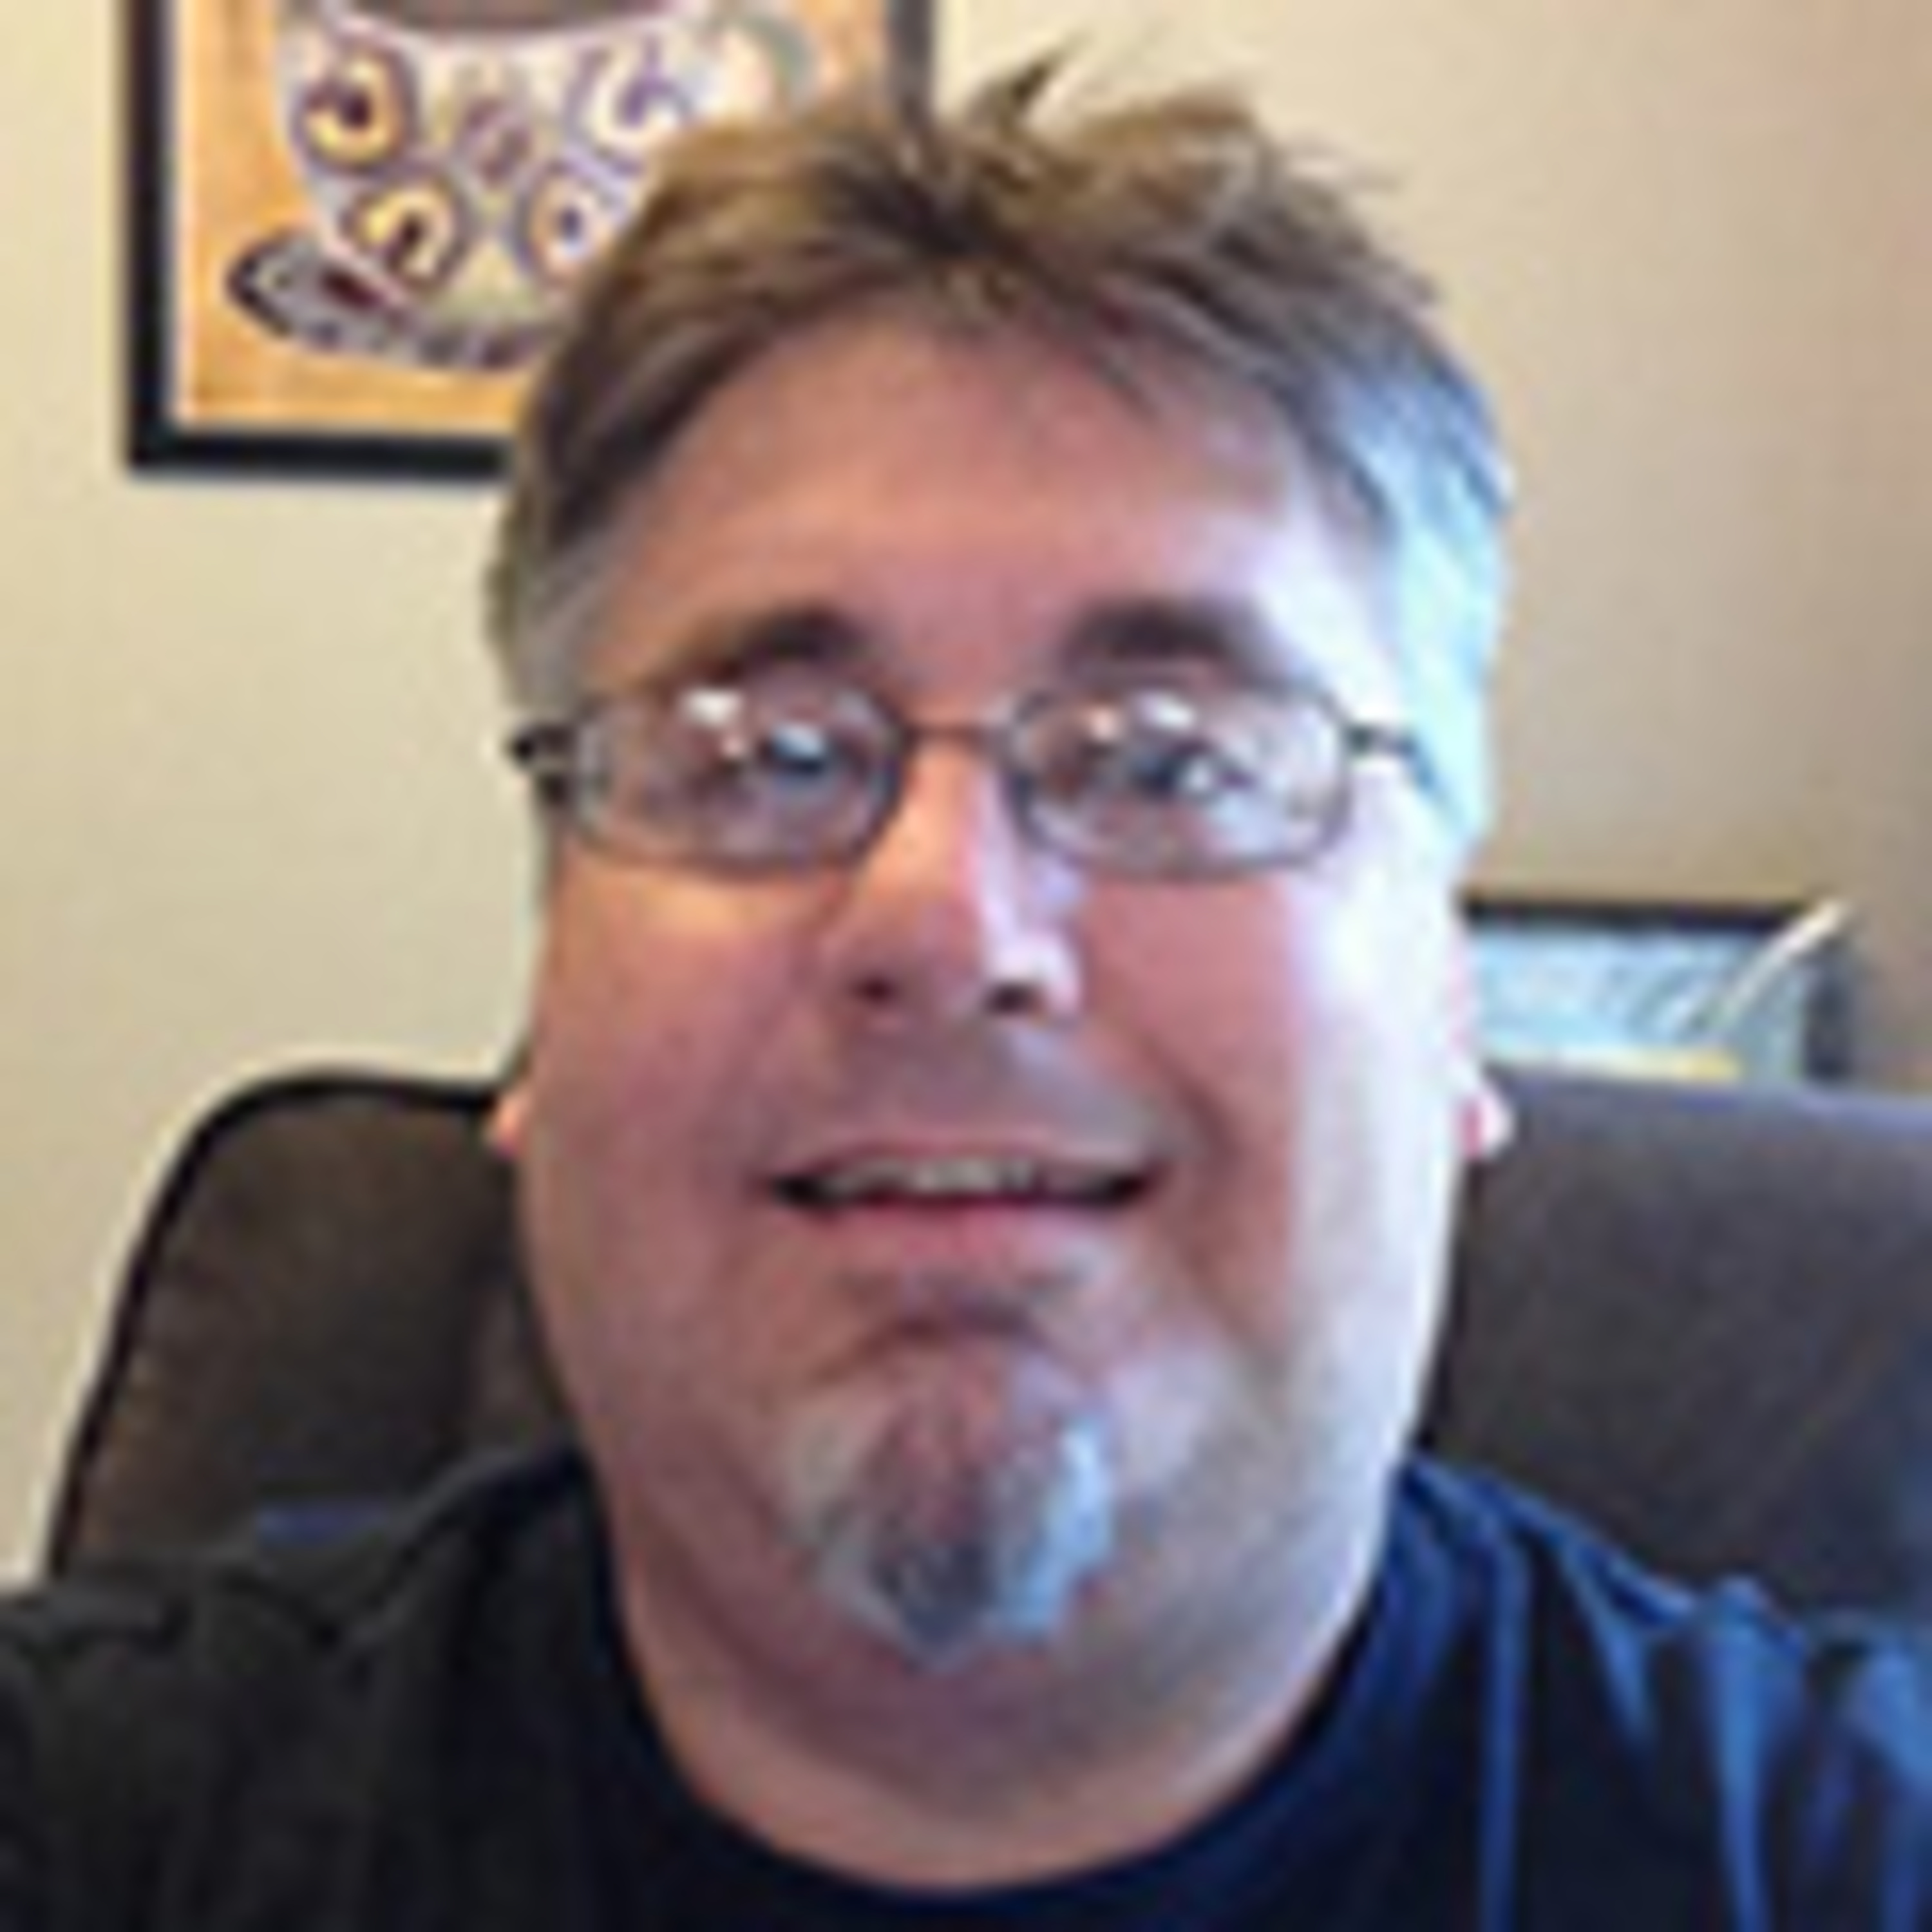 E390 - James Mathe (RPGNow Founder) has Passed & Other News